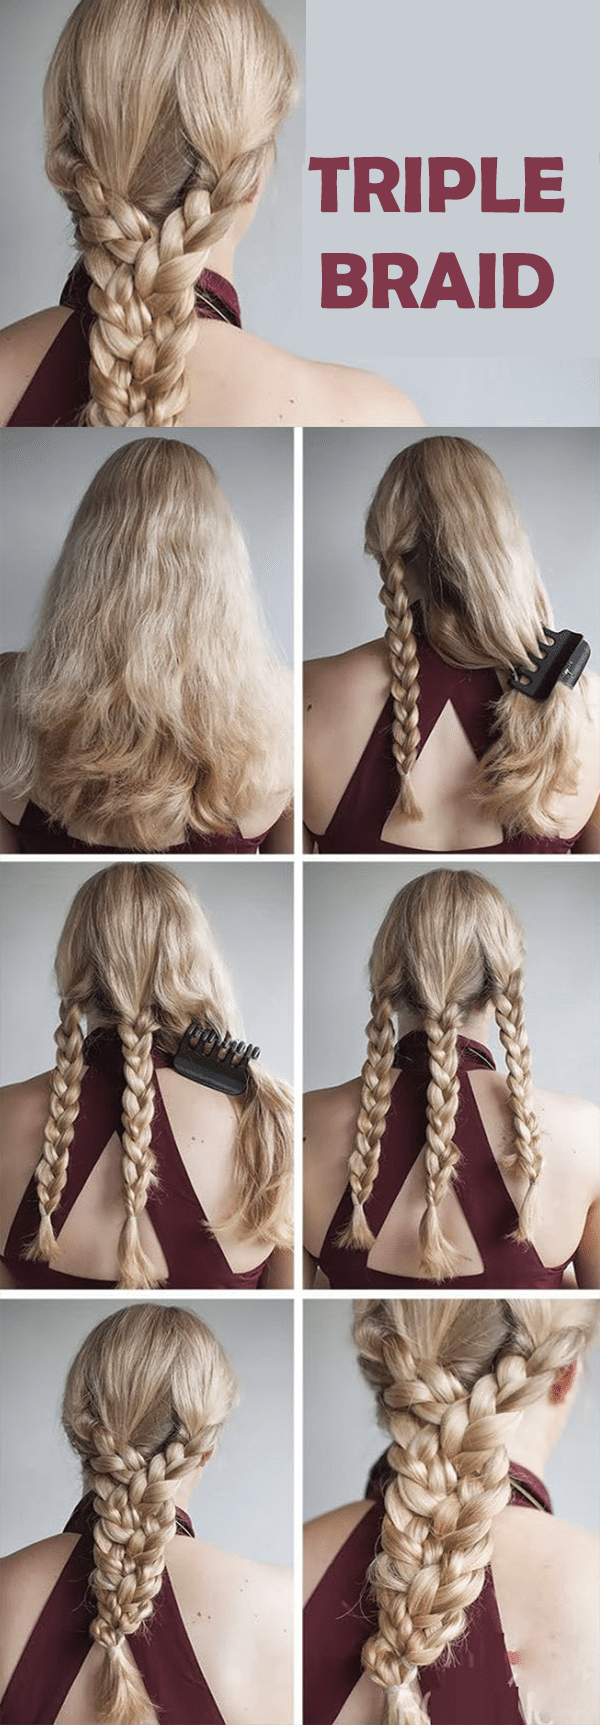 triple braid hairstyle